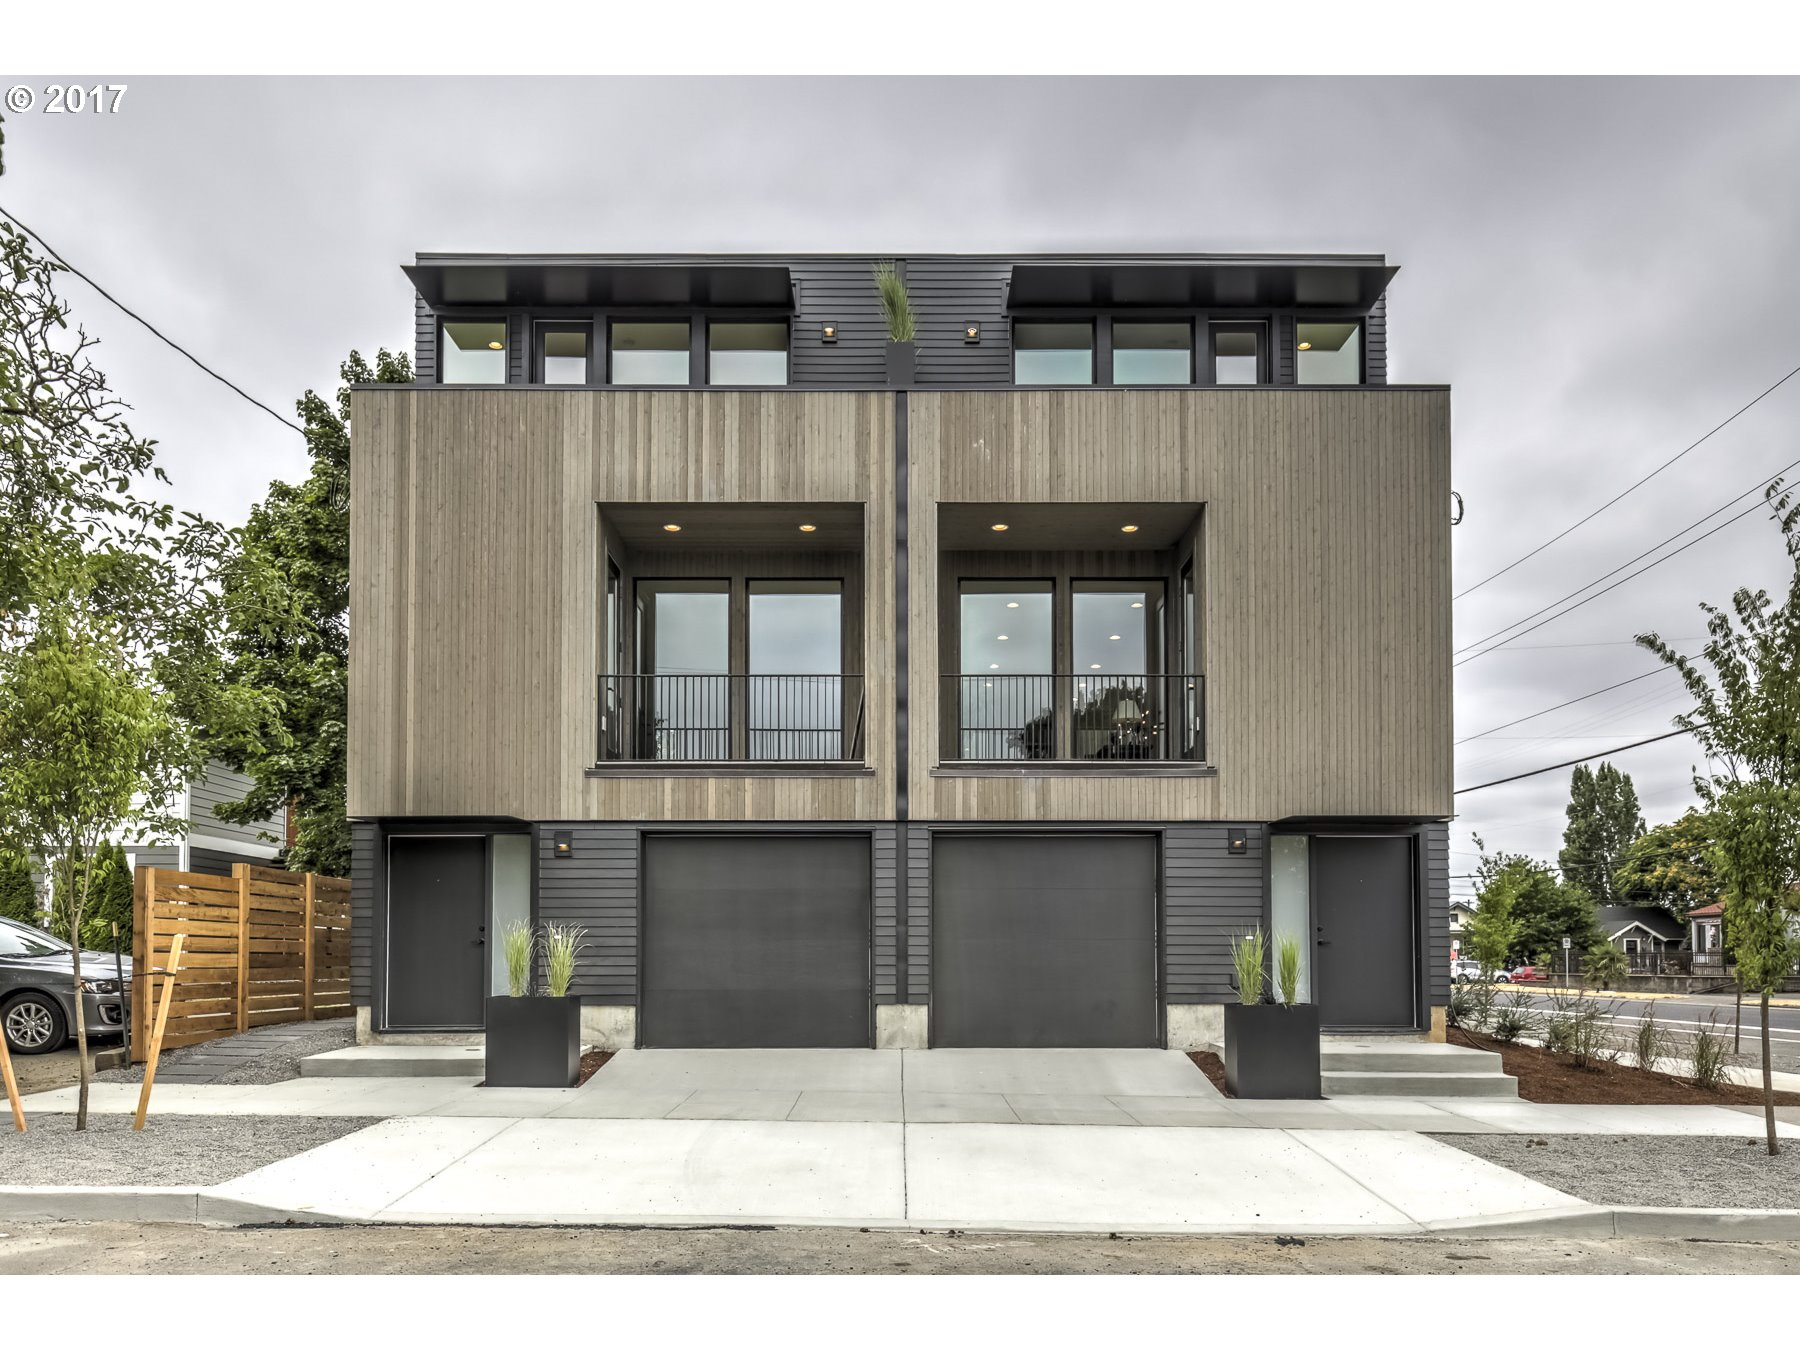 6495 N WILBUR AVE, Portland, OR 97217